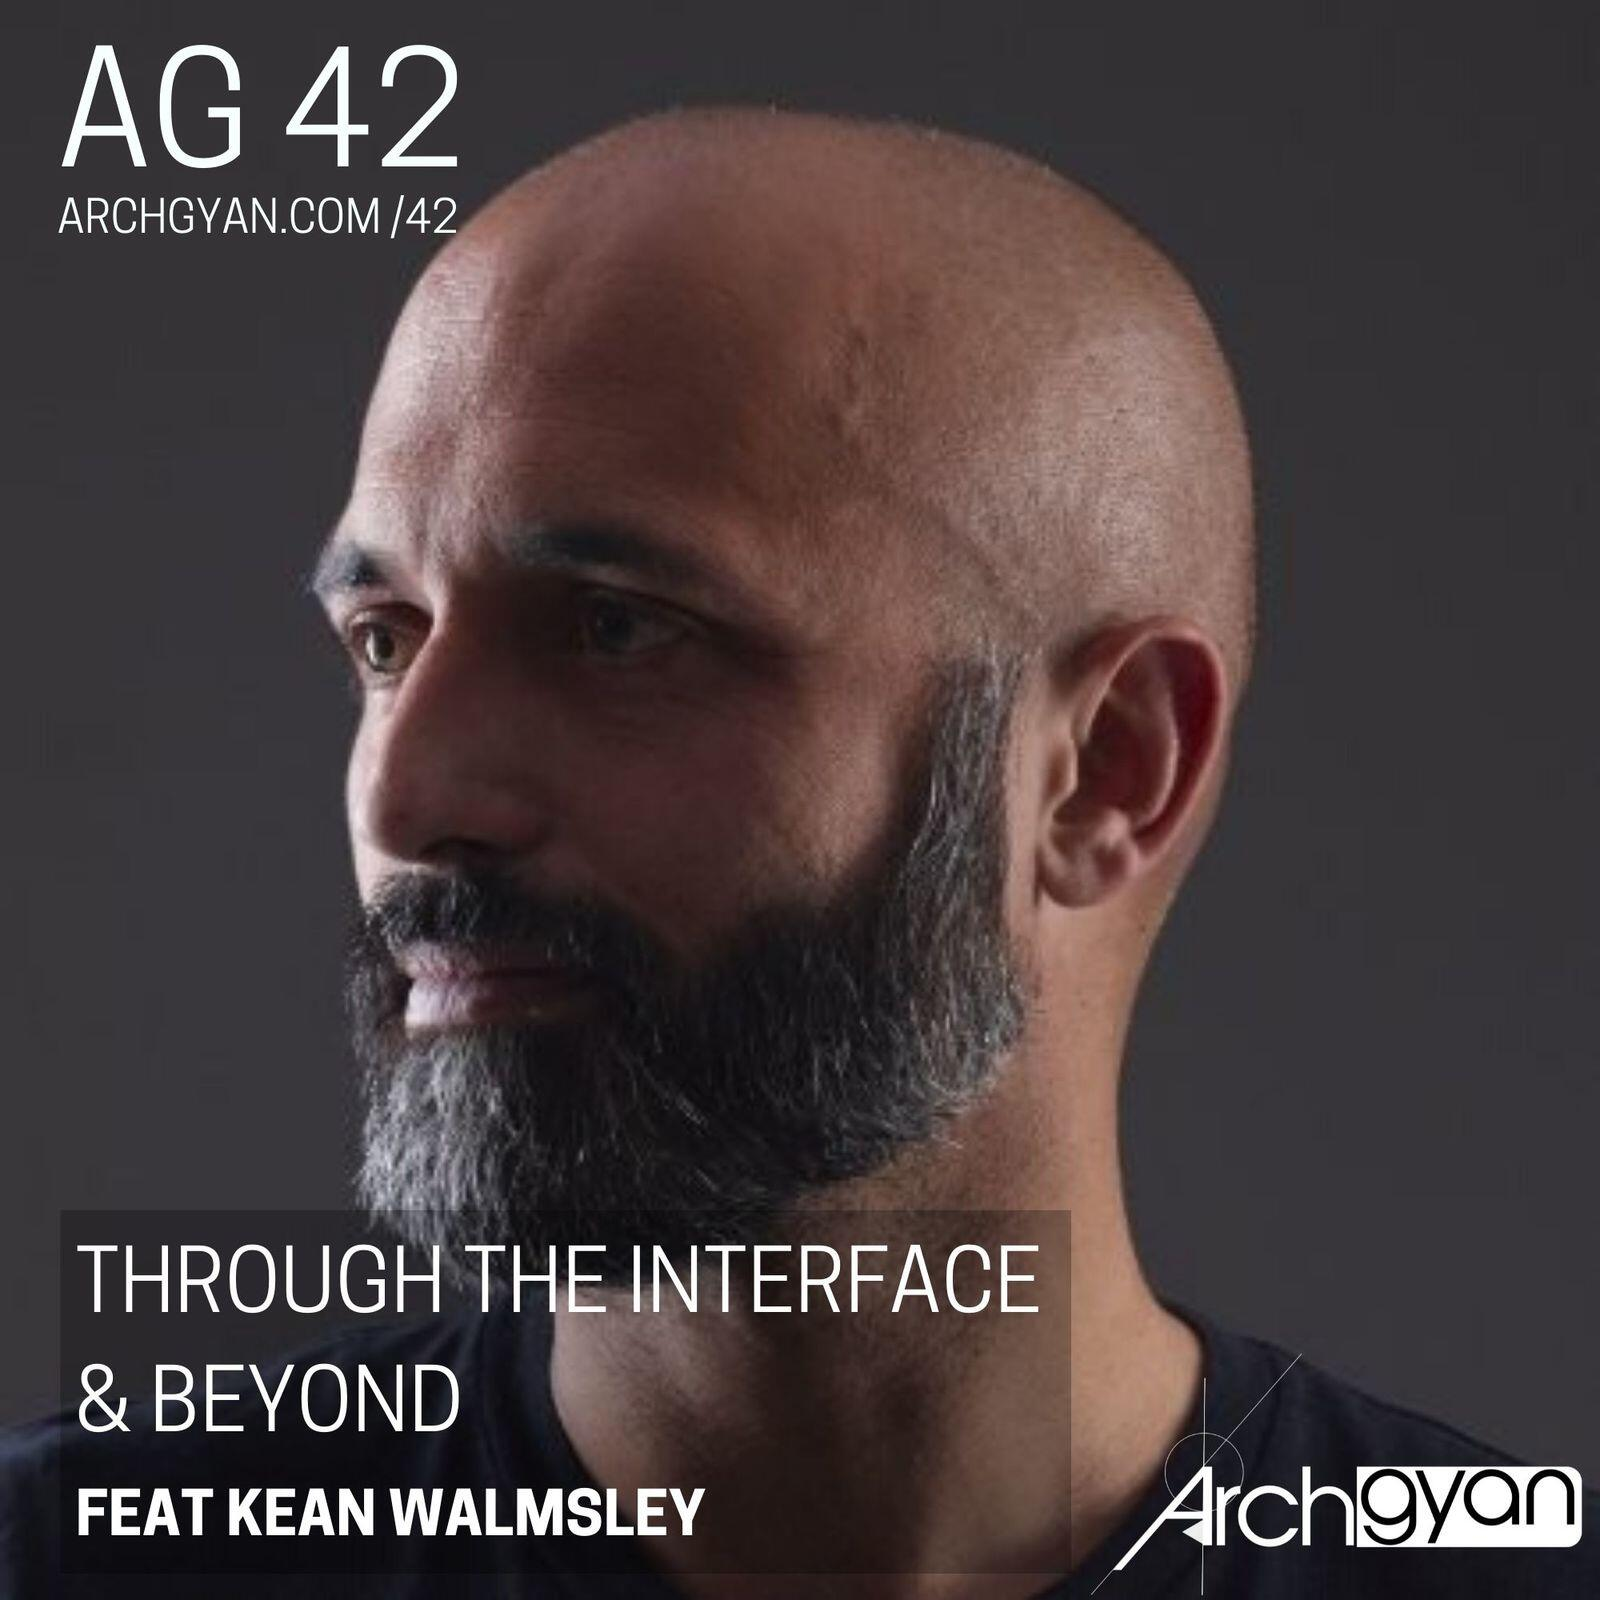 Through the Interface & Beyond with Kean Walmsley | AG 42